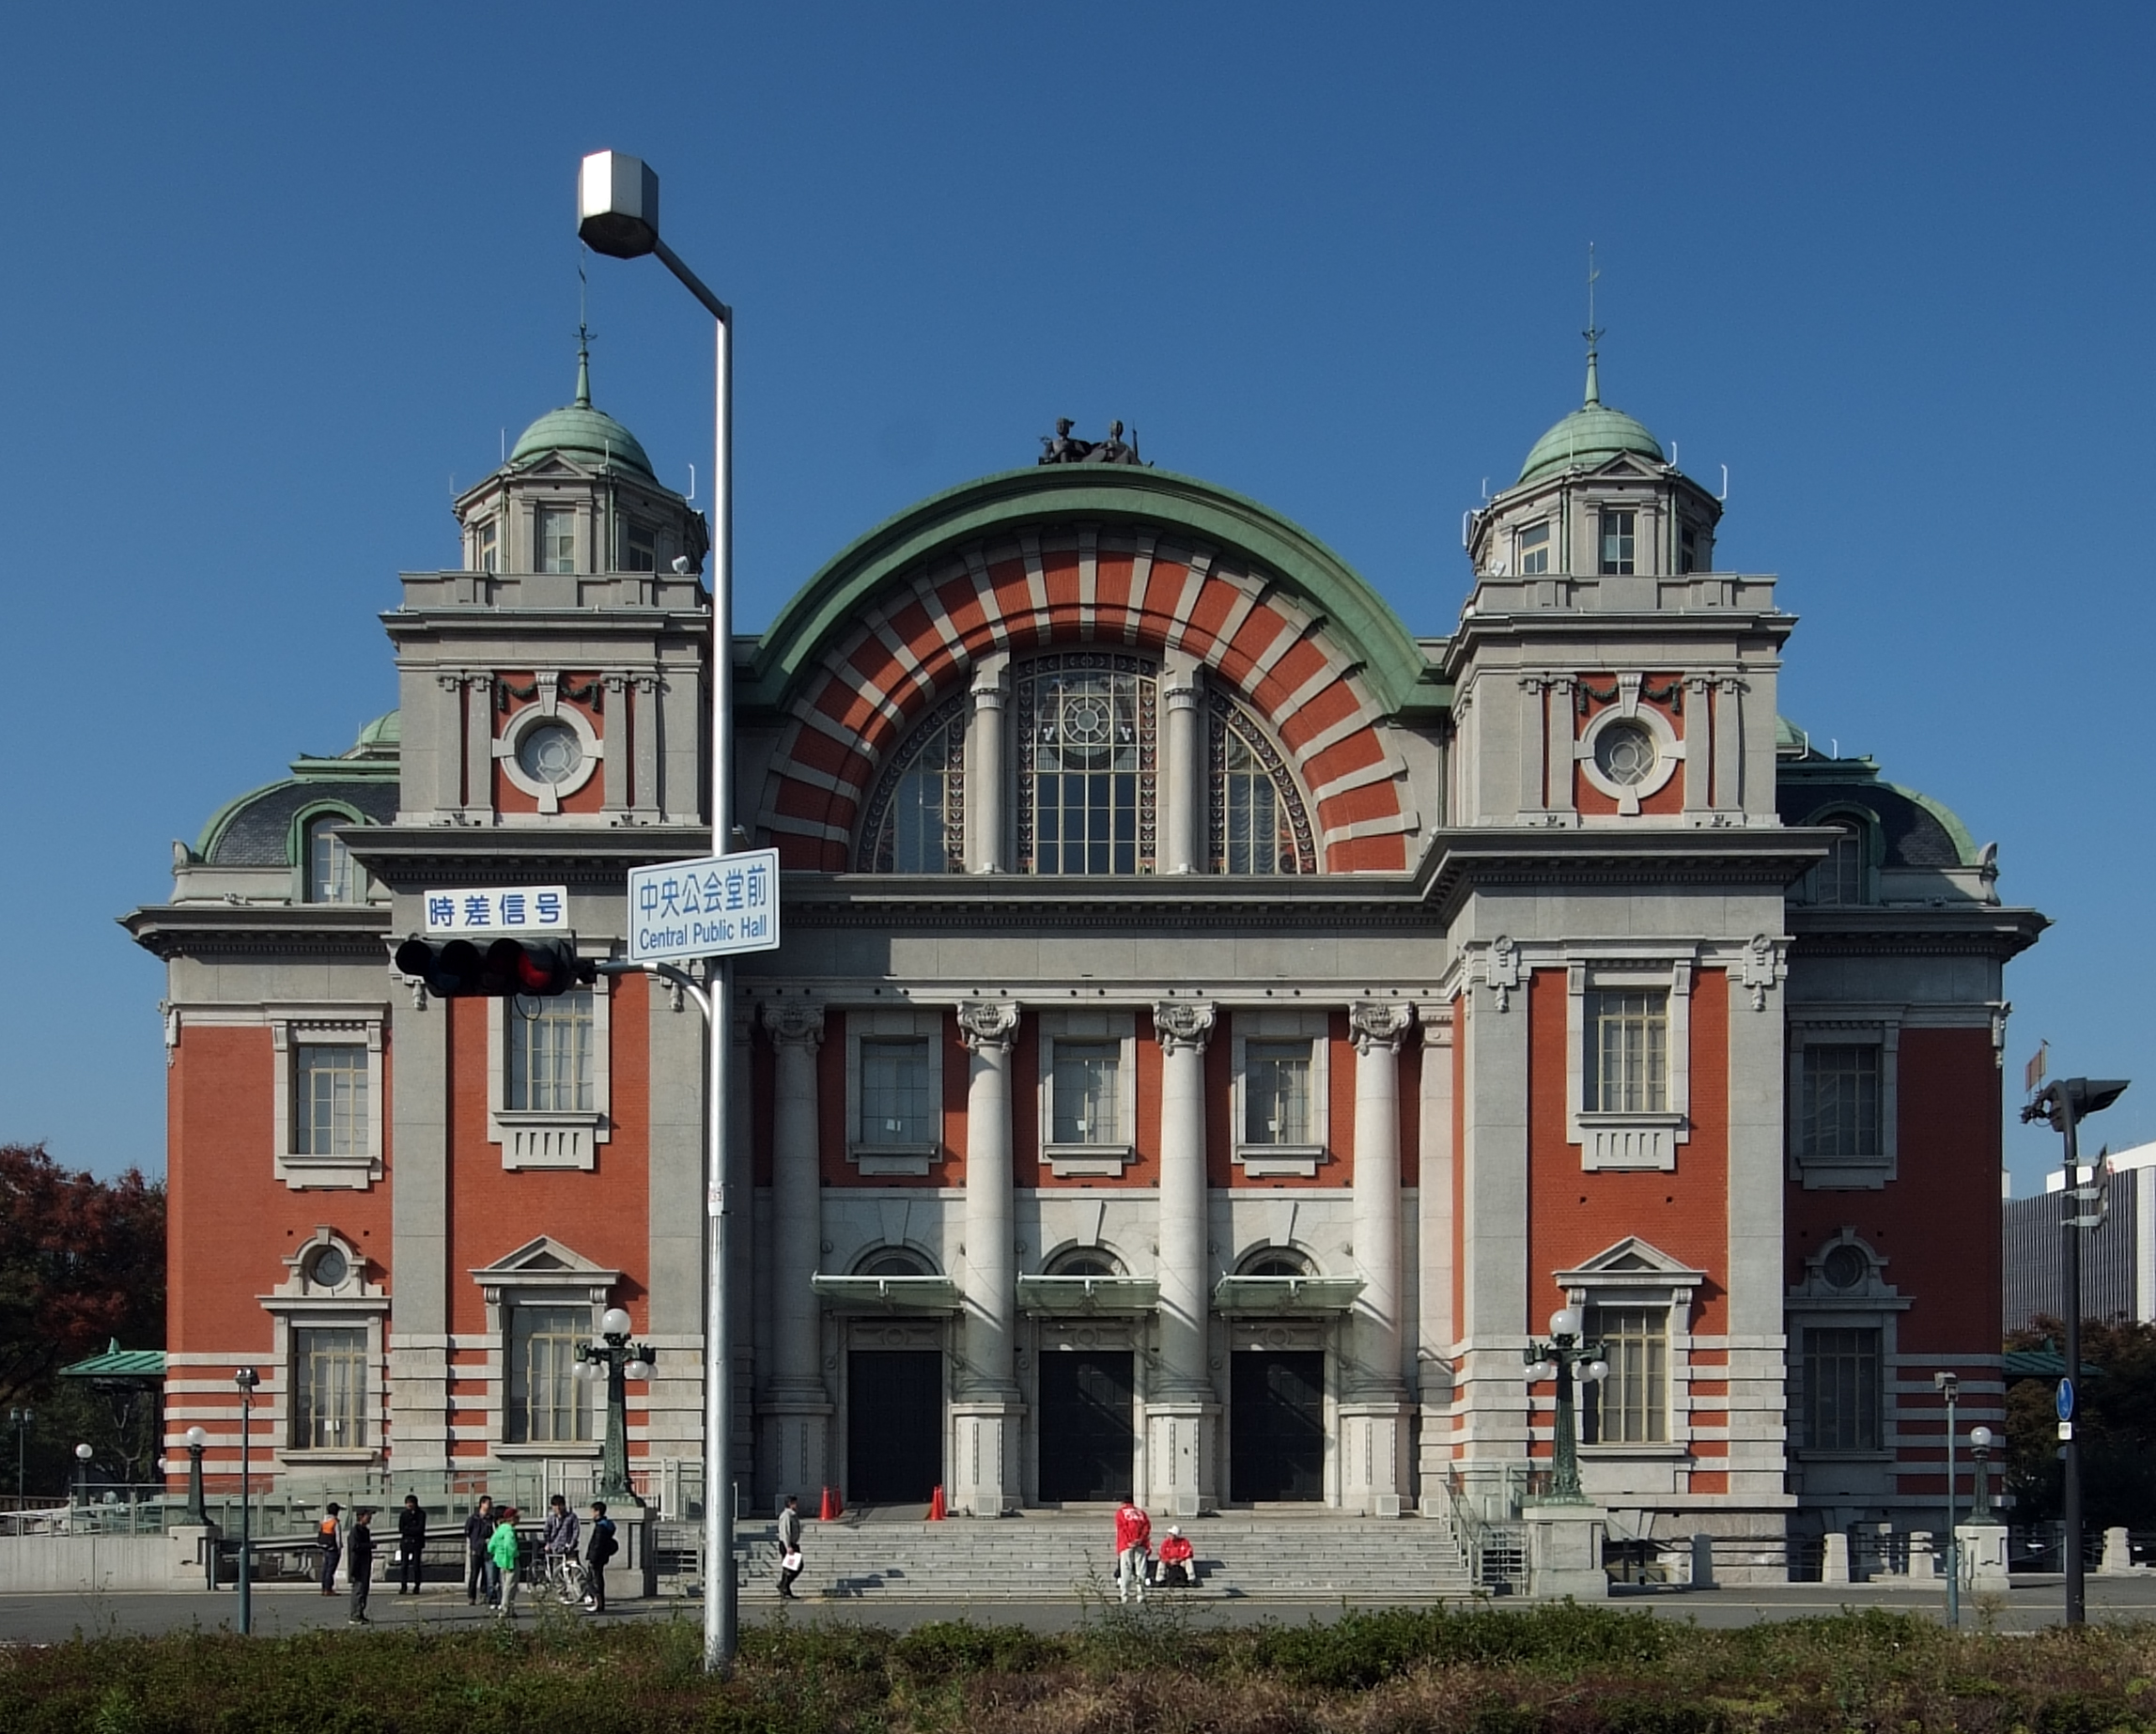 http://upload.wikimedia.org/wikipedia/commons/1/1d/Osaka_Central_Public_Hall_2010.jpg